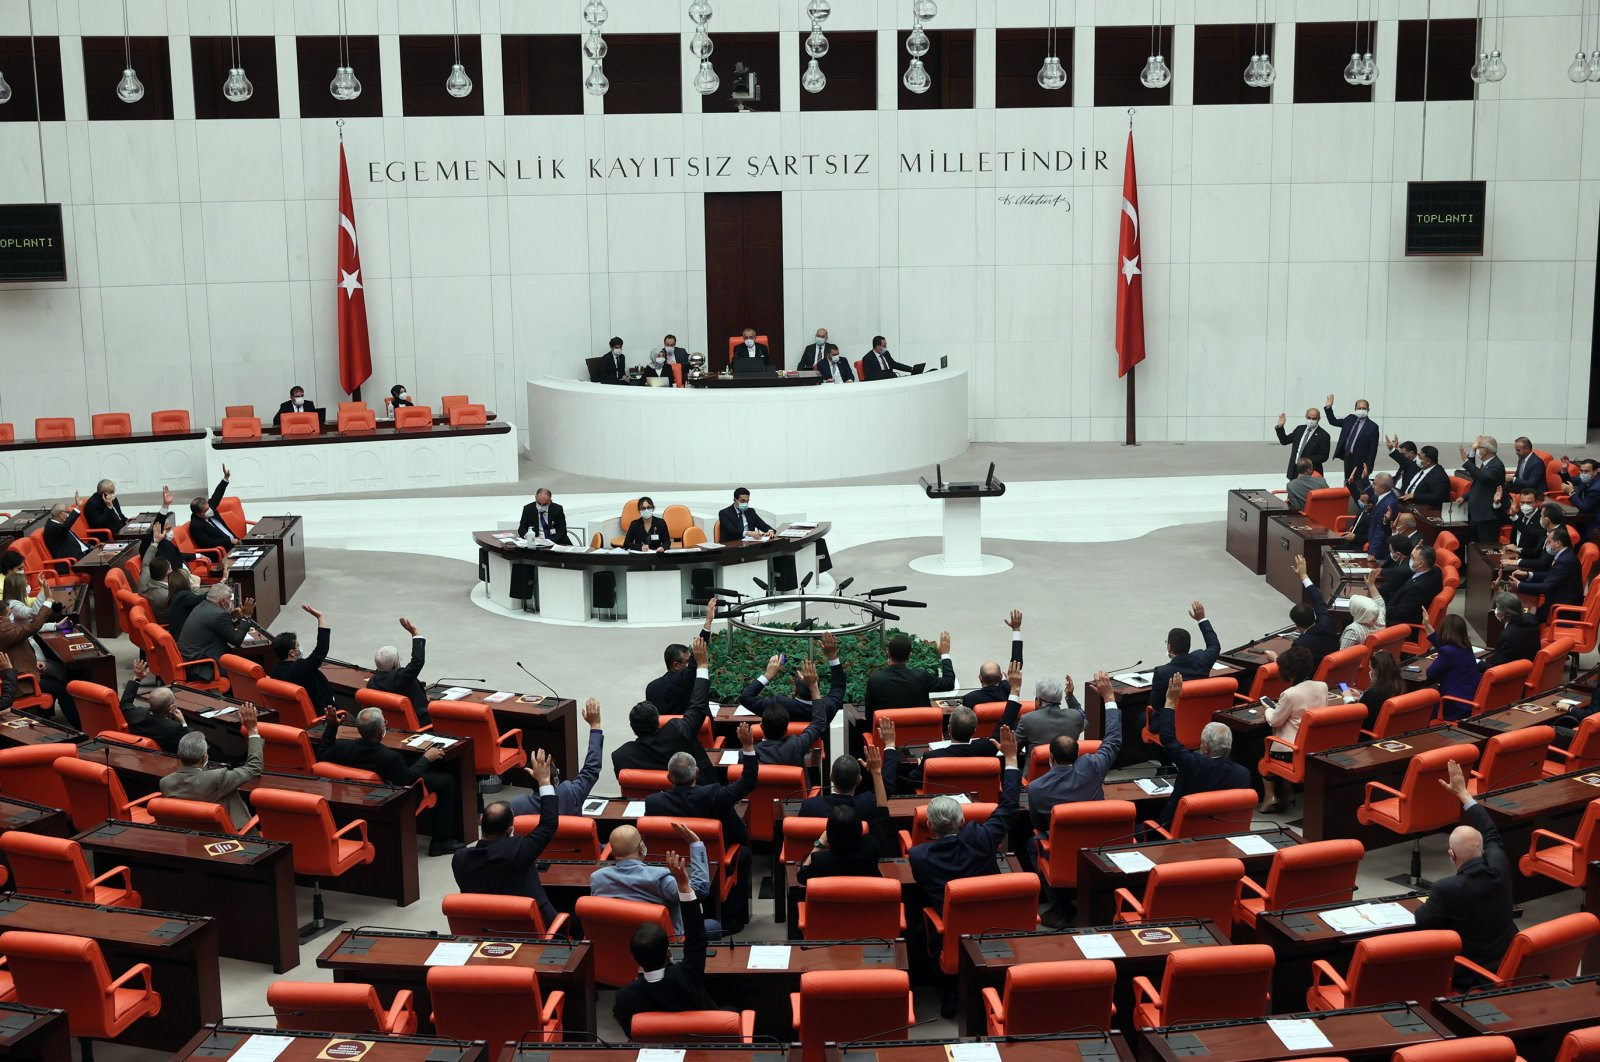 A view of the General Assembly of the Turkish Parliament is seen in this undated file photo. (Sabah File Photo)